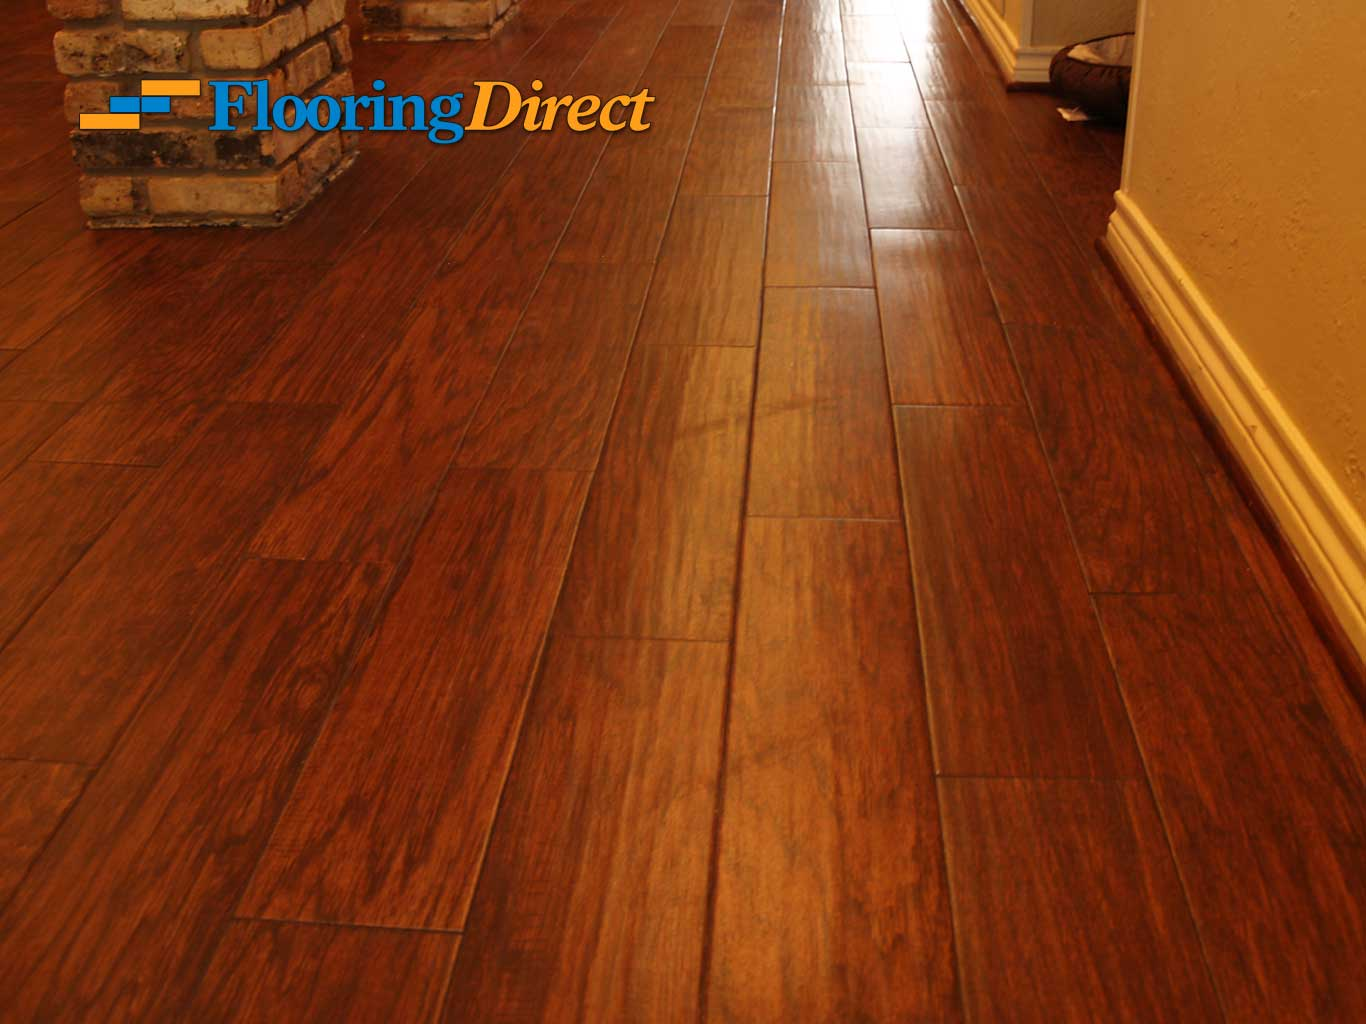 Hardwood Laminate Wood Look Tile Flooring Serving All Of Dfw Flooring Direct